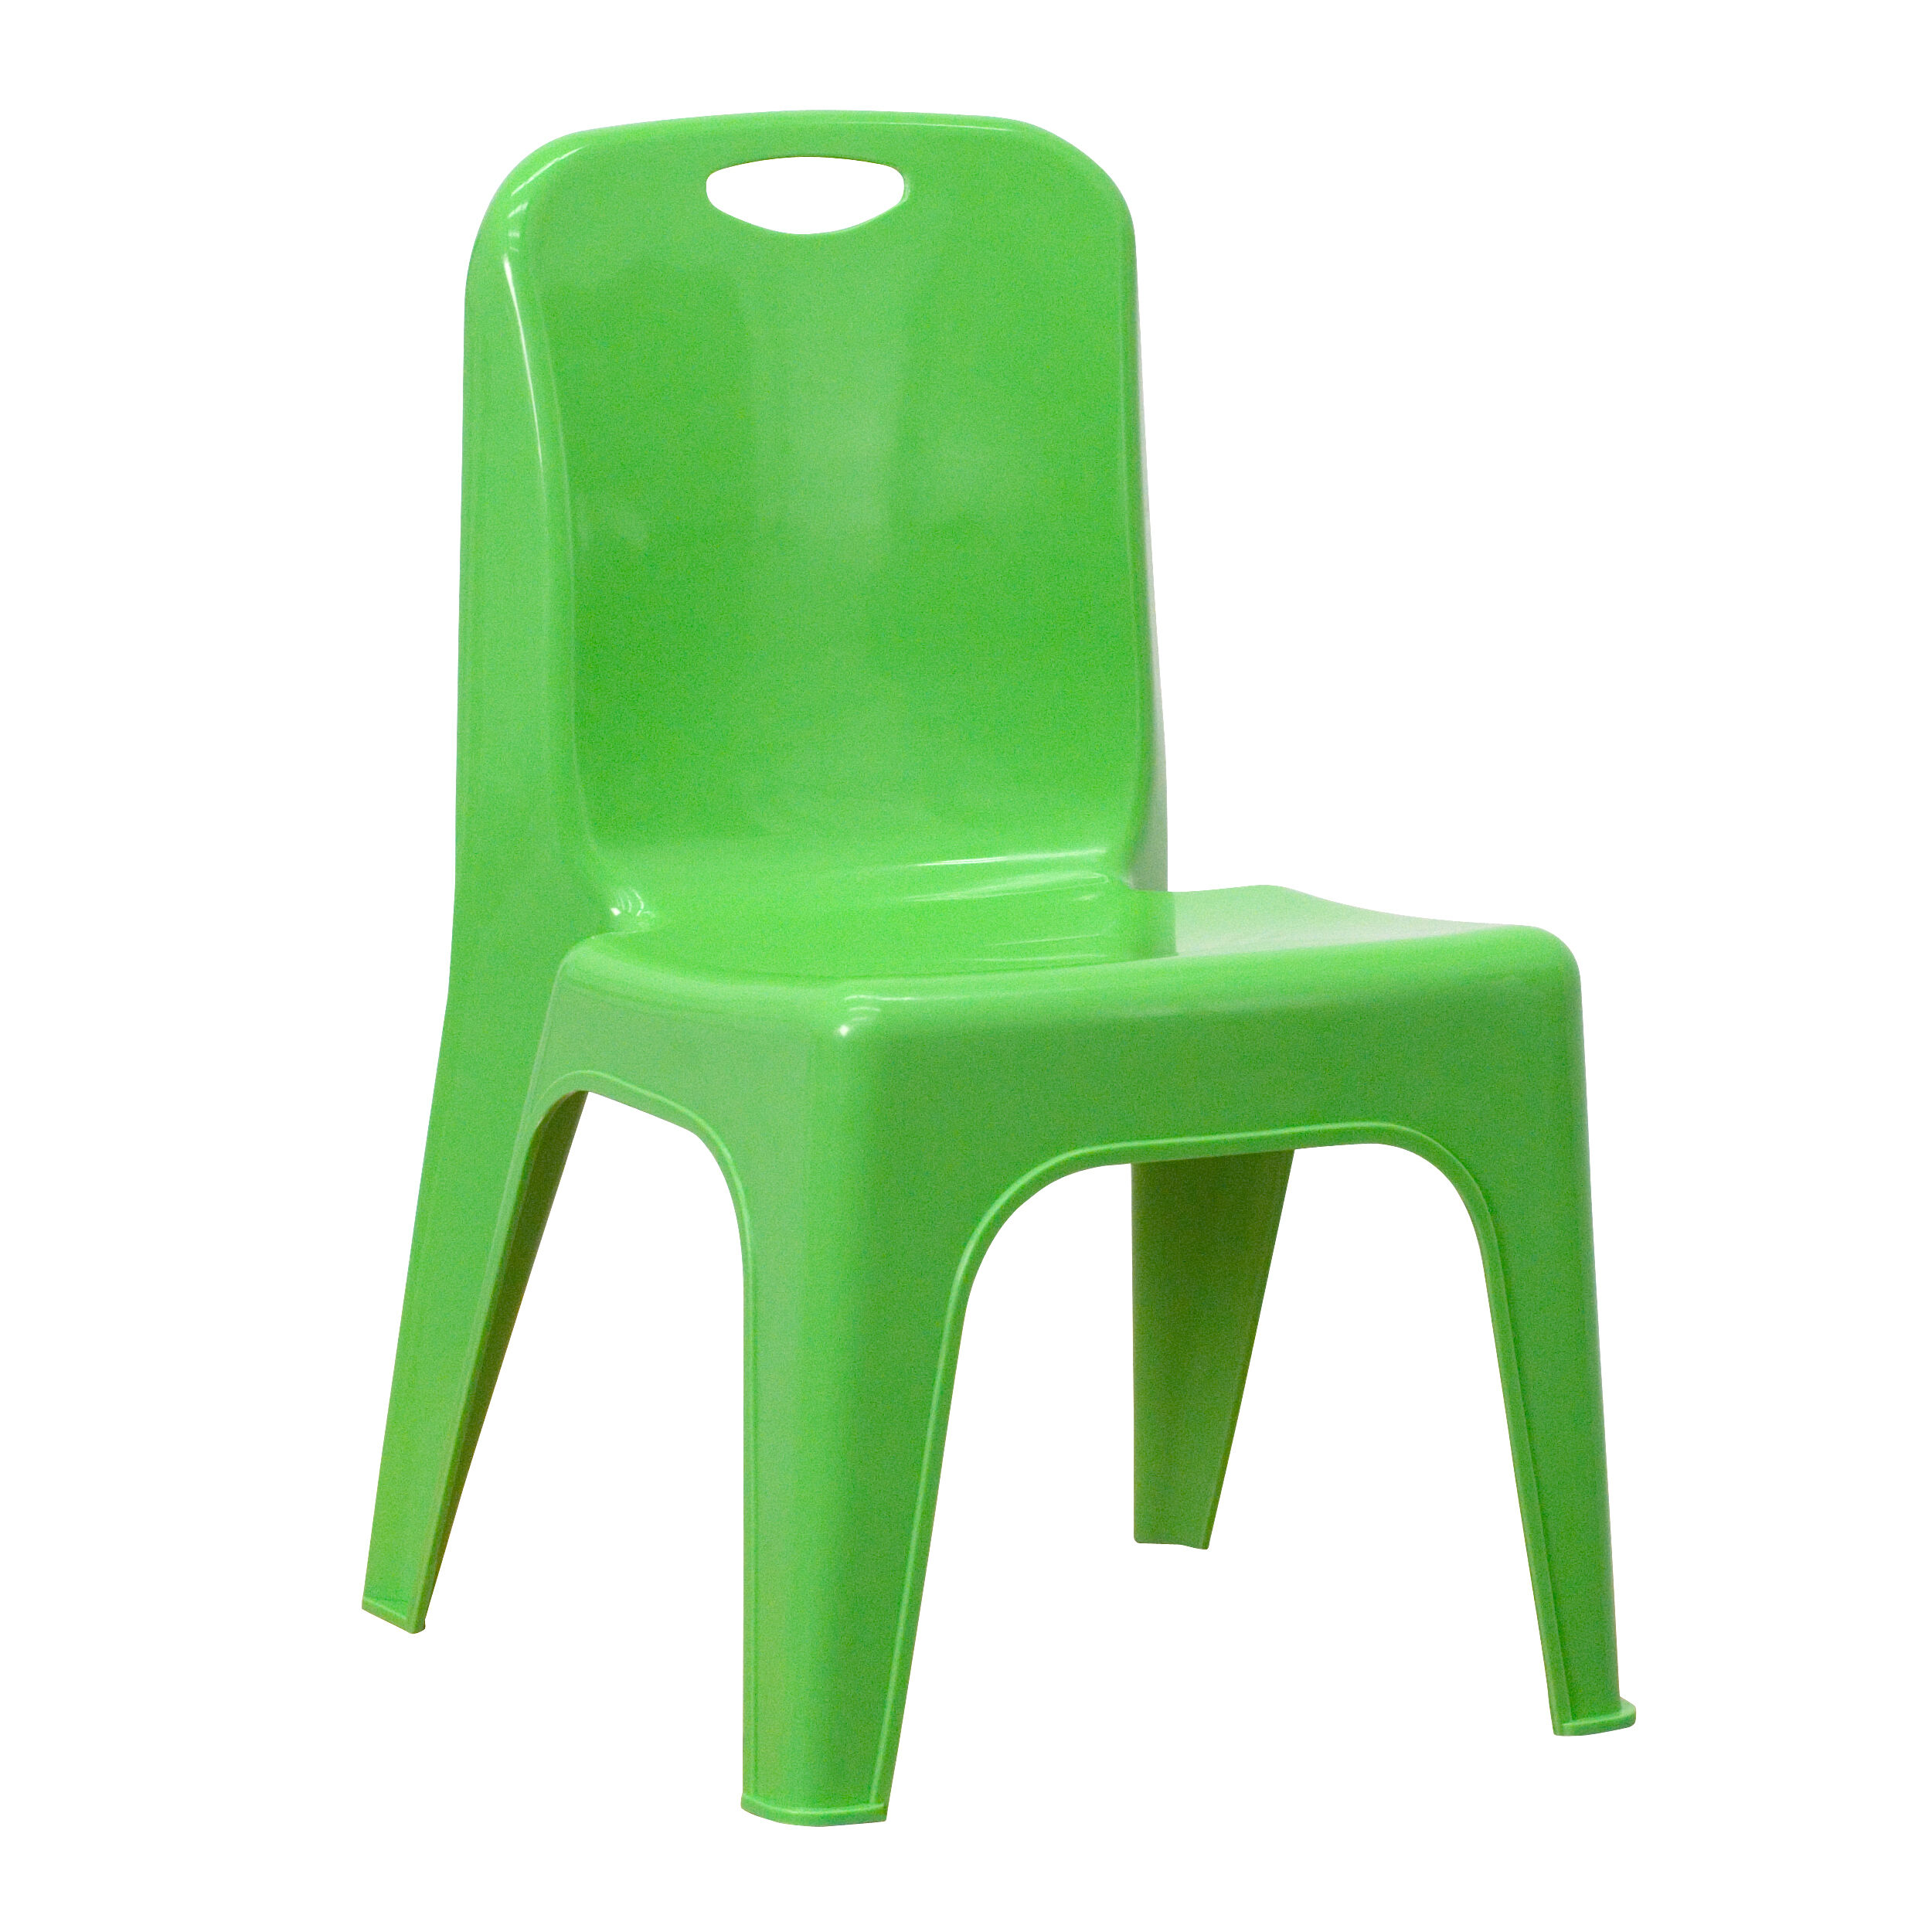 Beau Green Plastic Stackable School Chair With Carrying Handle And 11